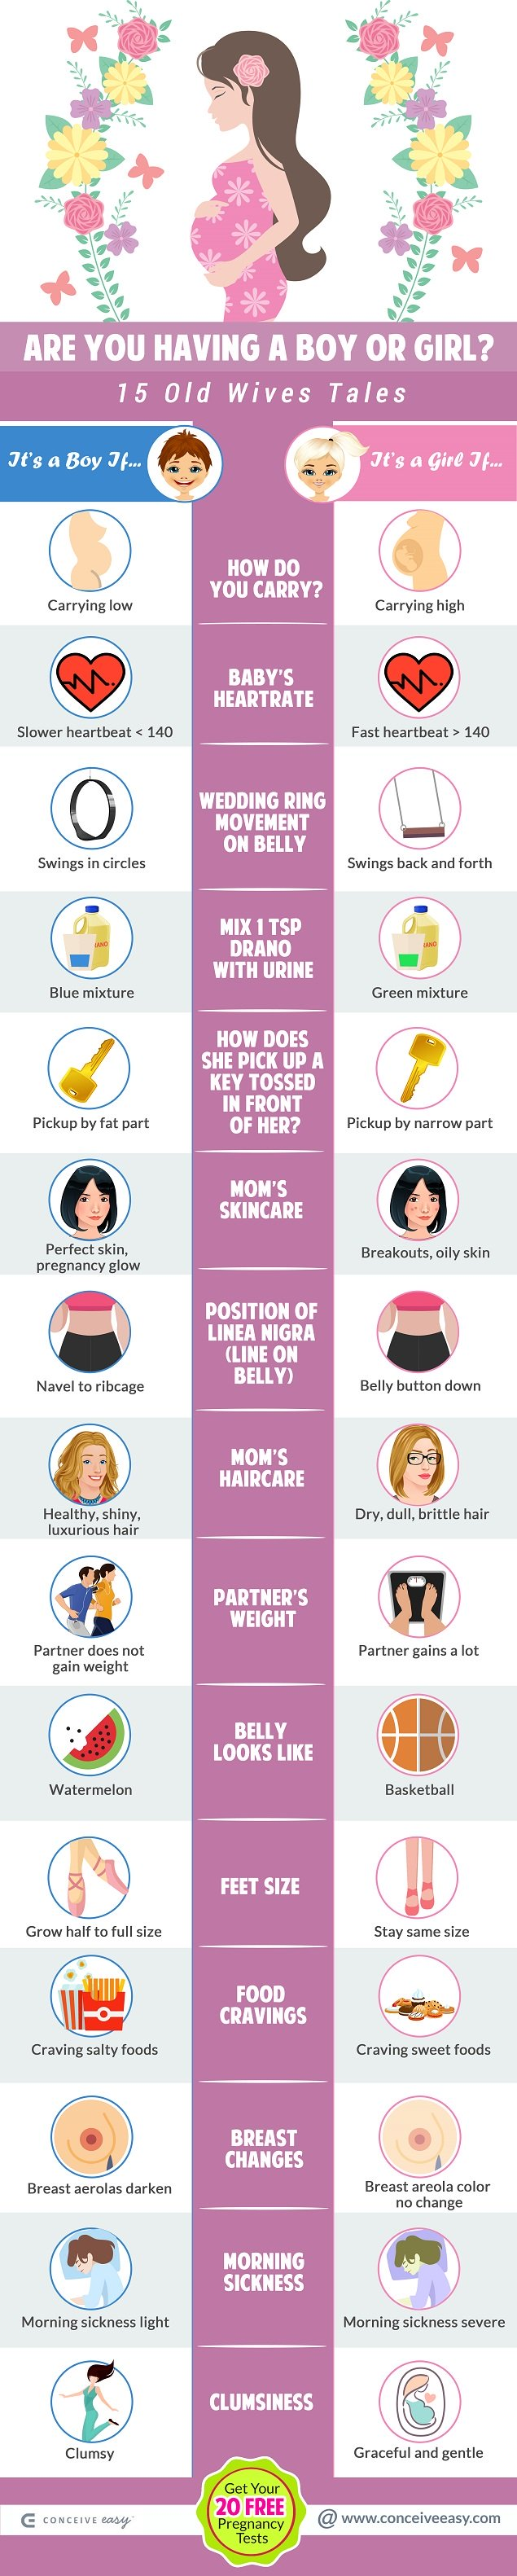 Boy or Girl? 15 Old Wives Tales Infographic